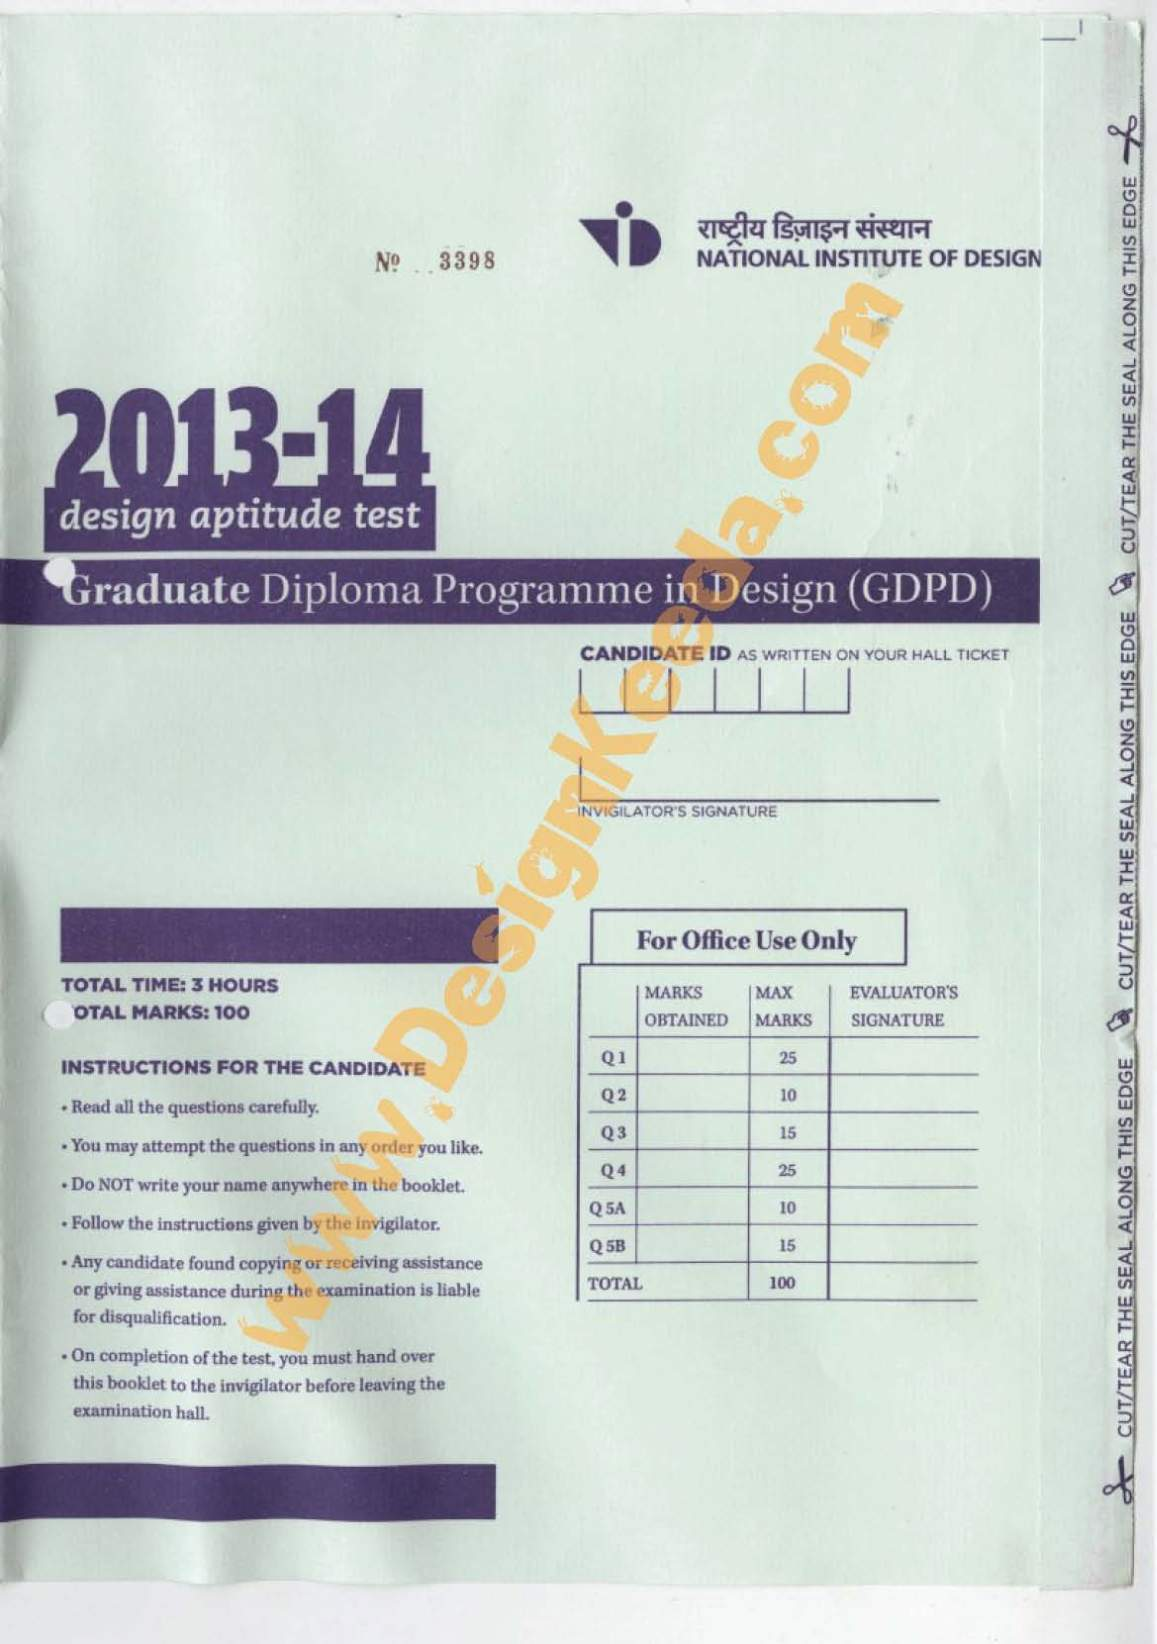 92 Interior Design Exam Papers Official High School Exam Papers Leaked During Examination